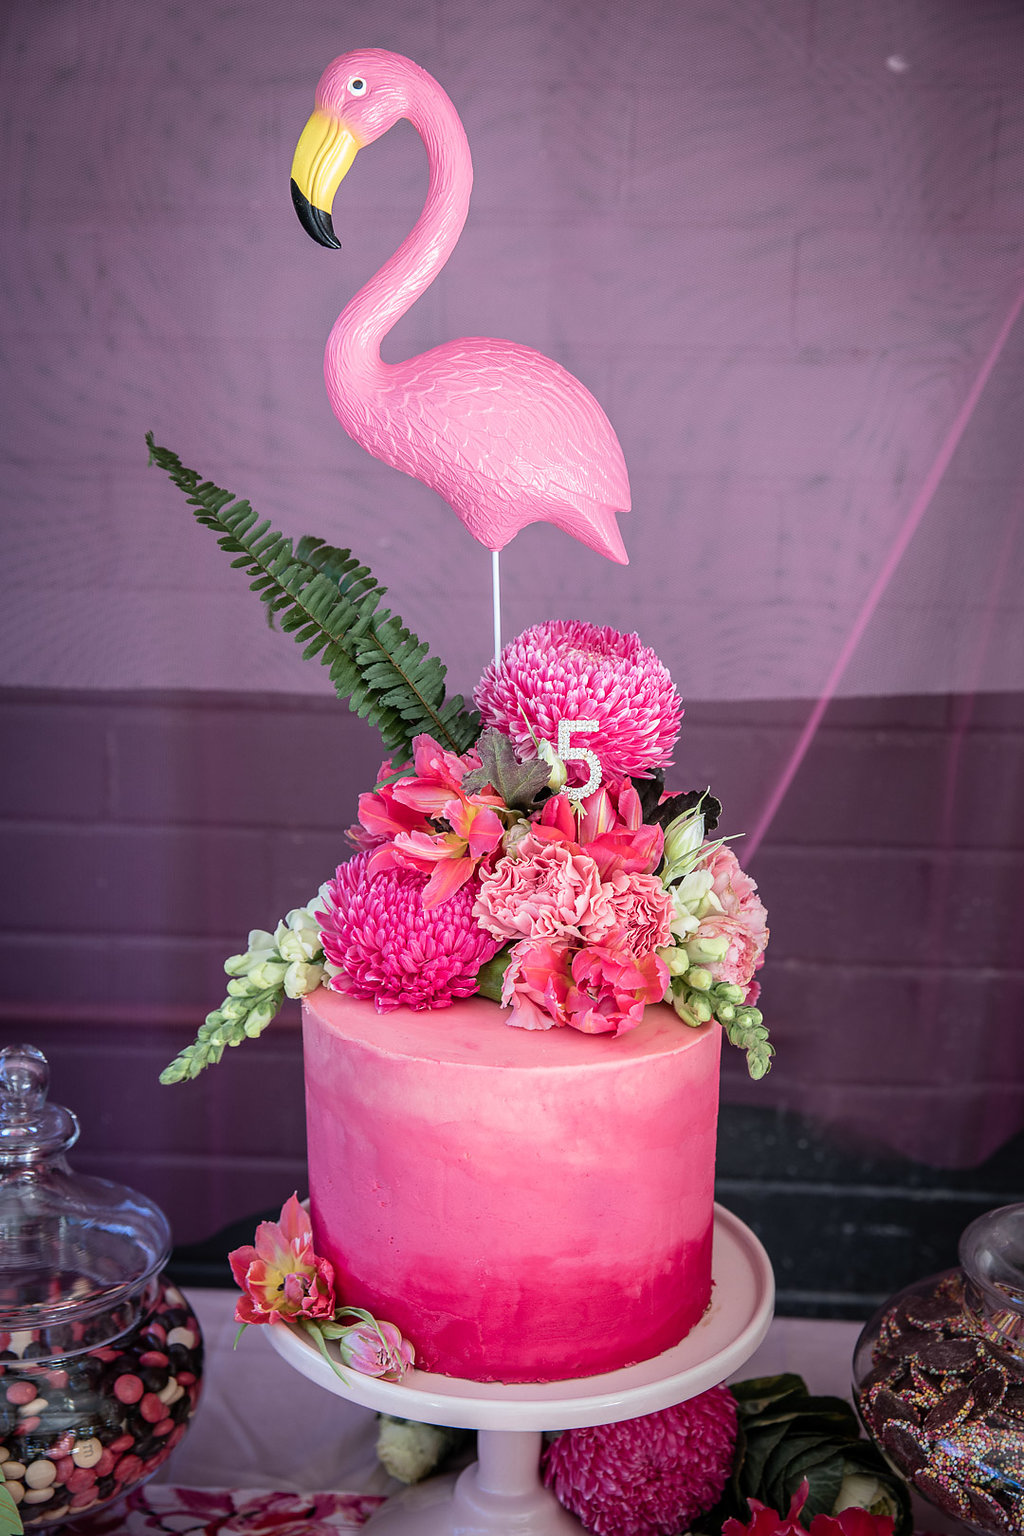 Cake at a flamingo themed birthday party